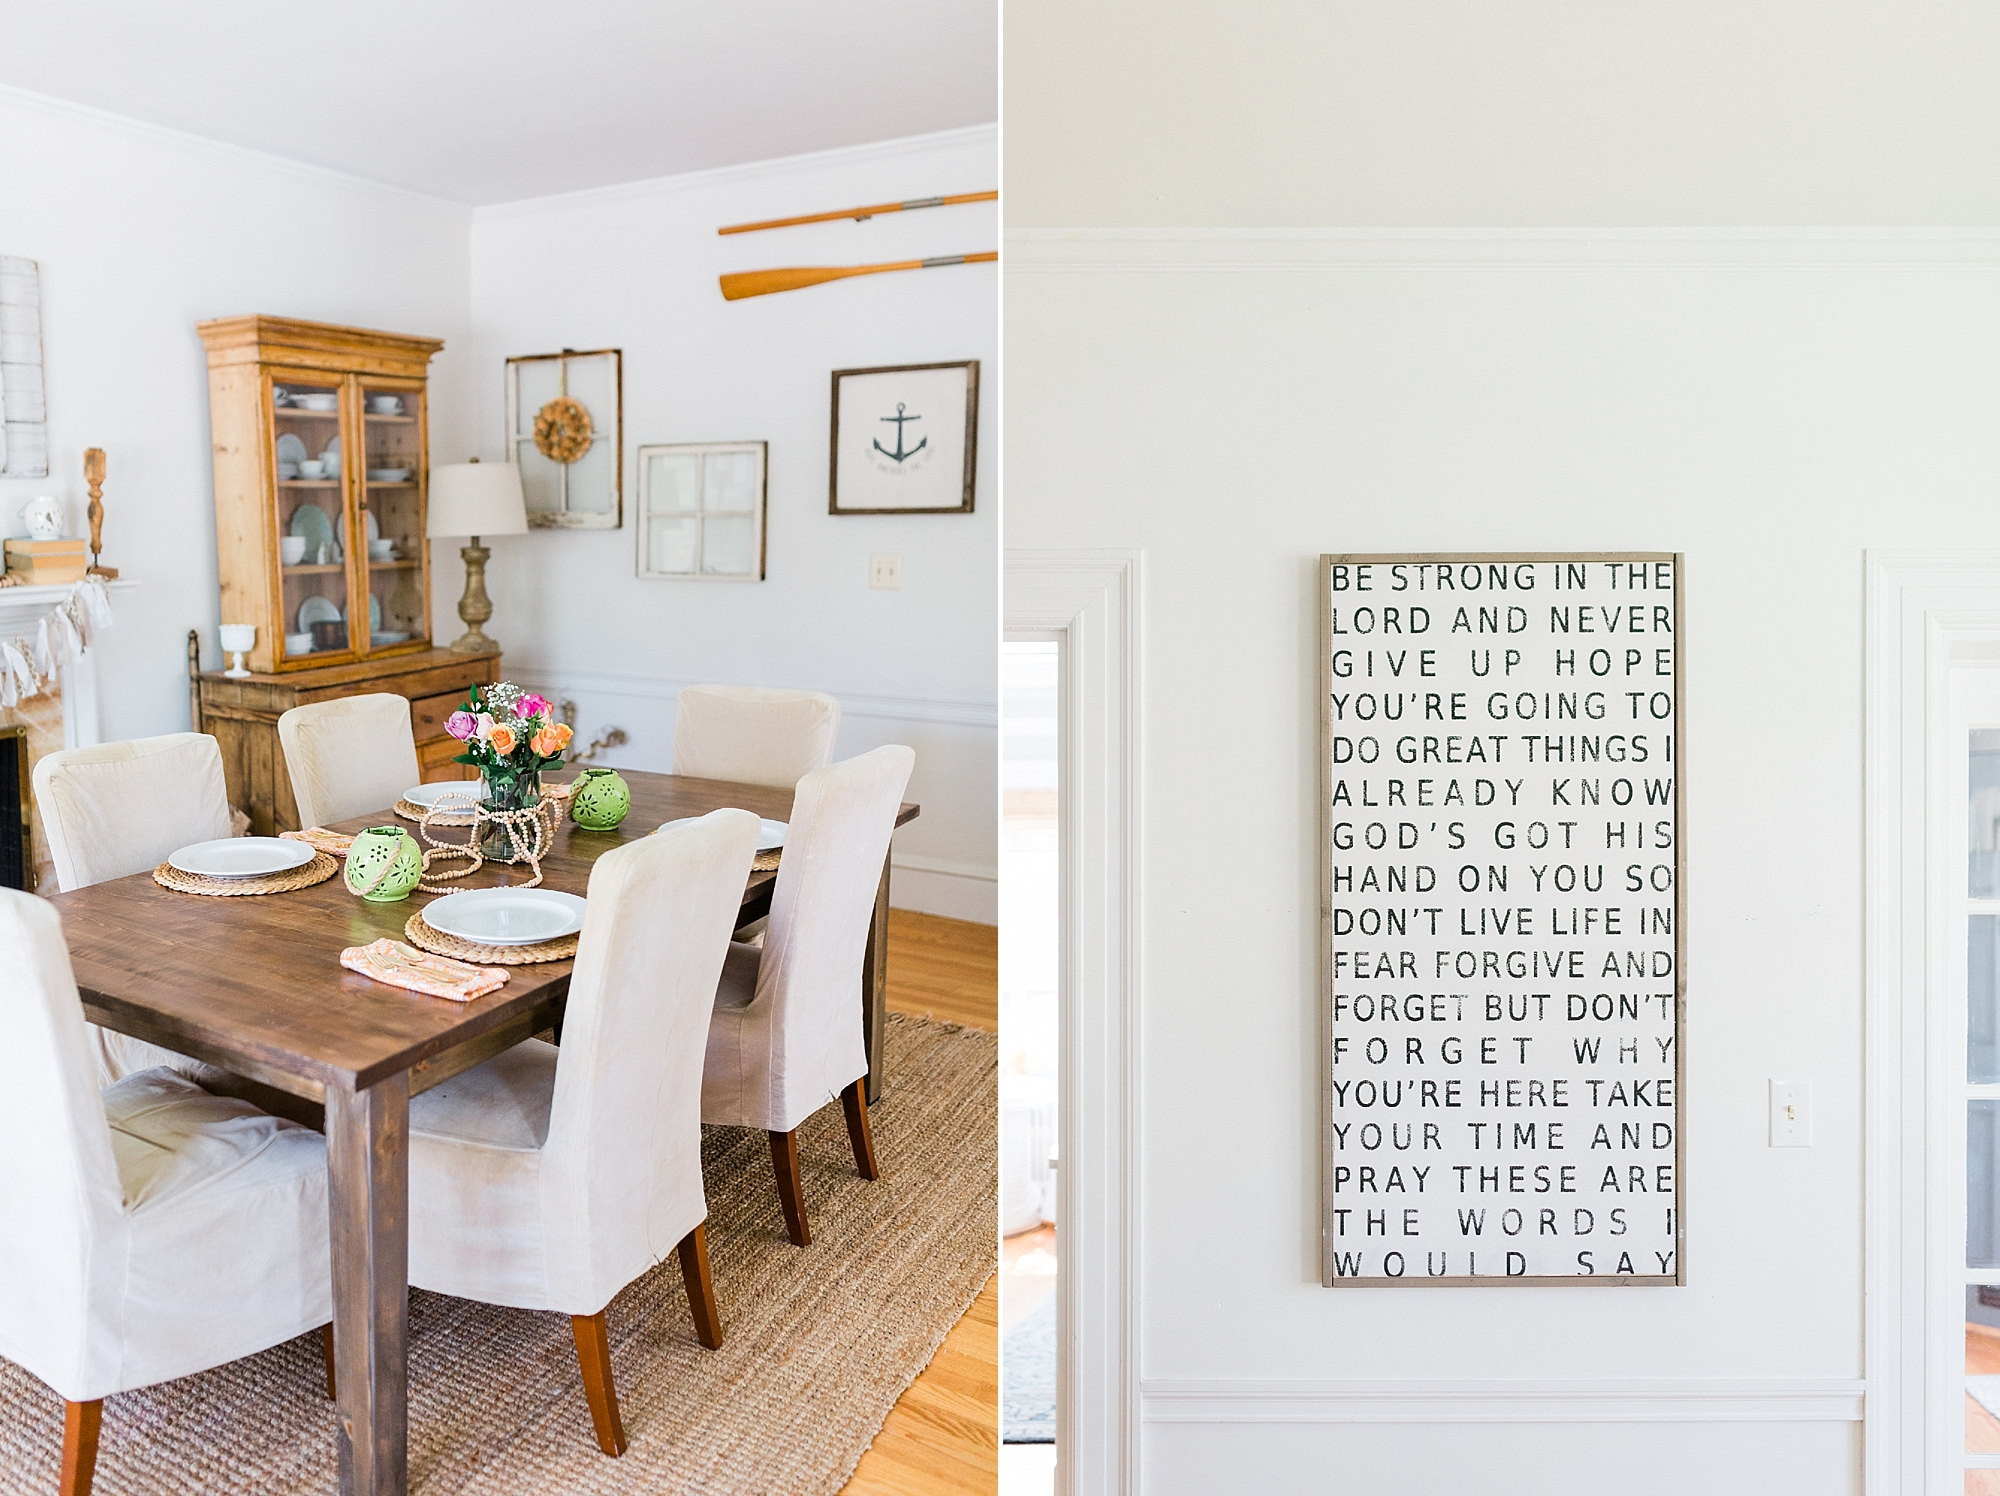 Dining Room Decor - Christian Sign - New Hampshire Home - Madison Rae Photography